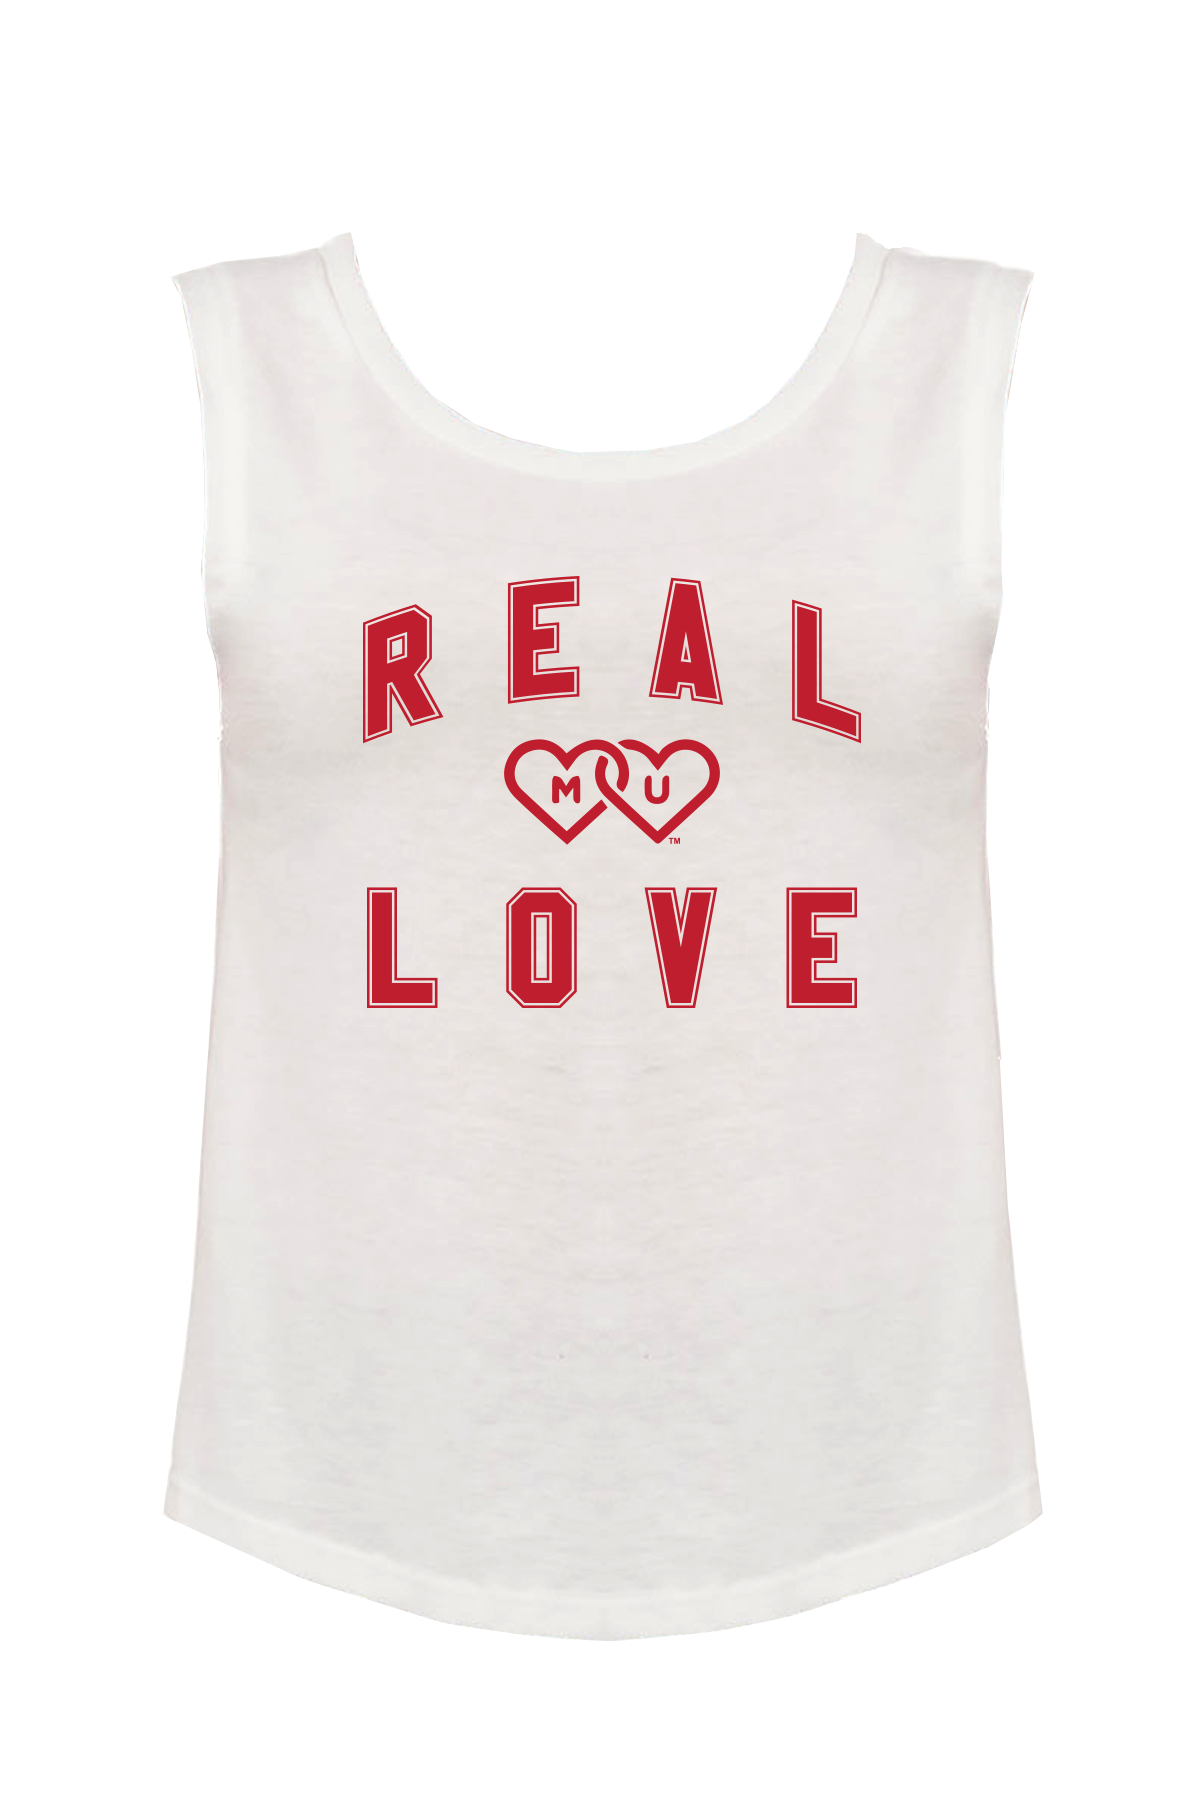 MIAMI UNIVERSITY Redhawks Miami Merger Real Love Women's Muscle Tank